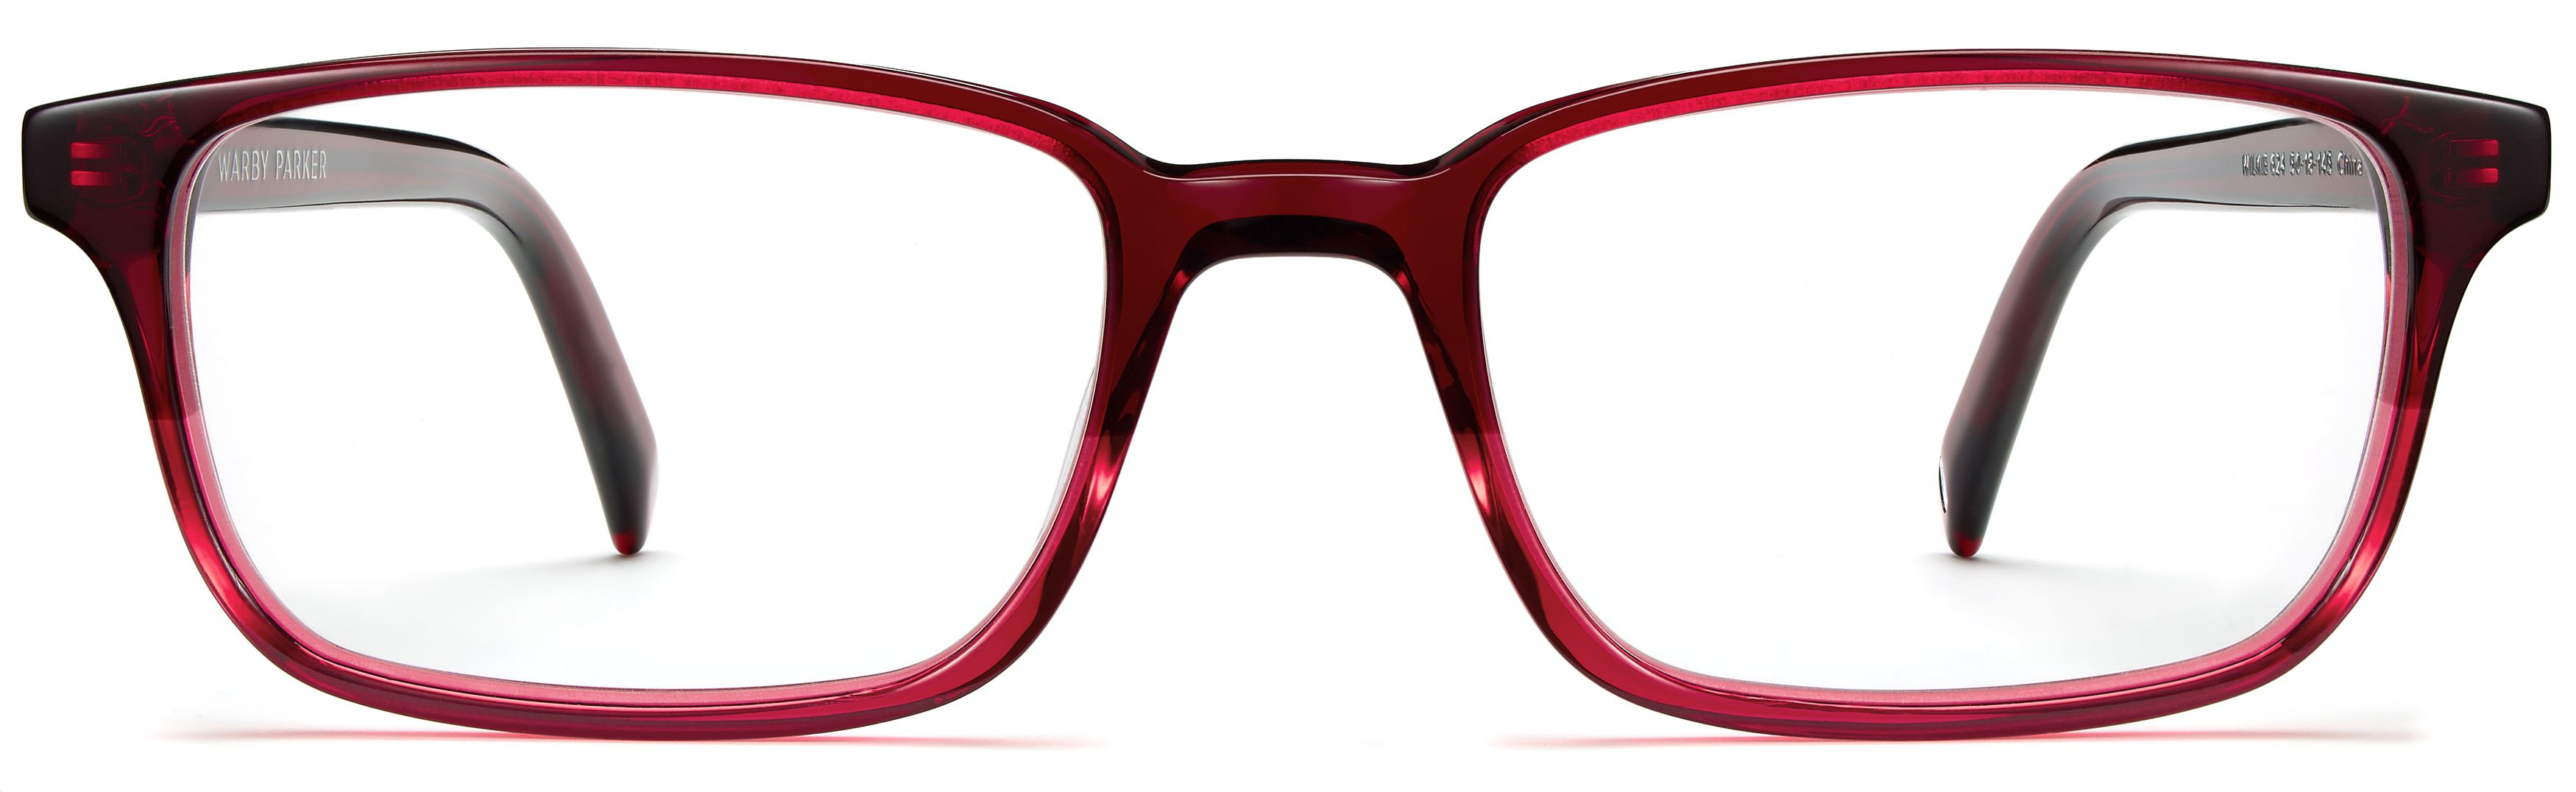 c6ef979639a Wilkie Eyeglasses in Berry Crystal Fade for Women